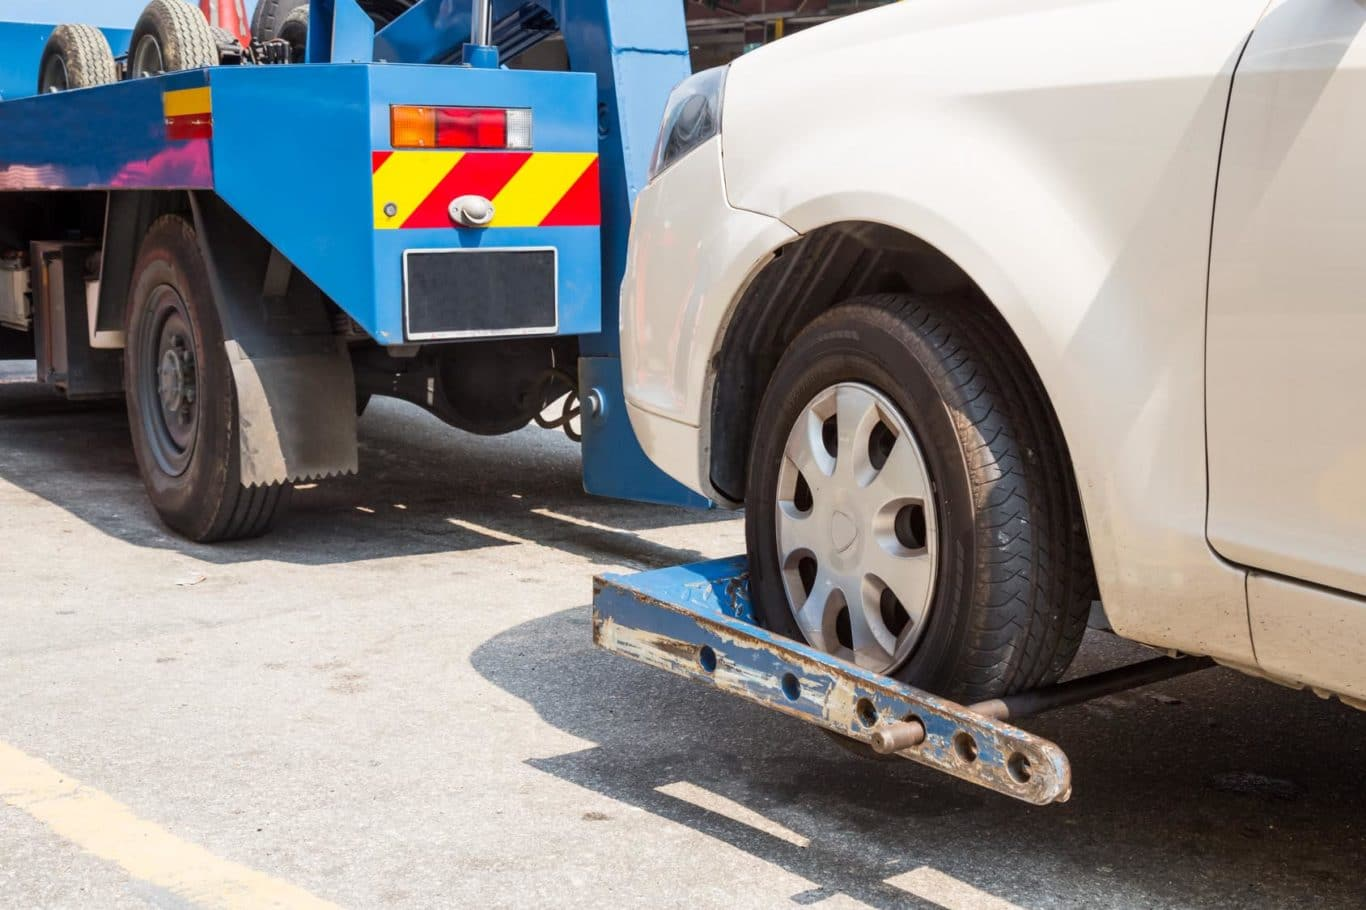 Johnstown expert Car Recovery services